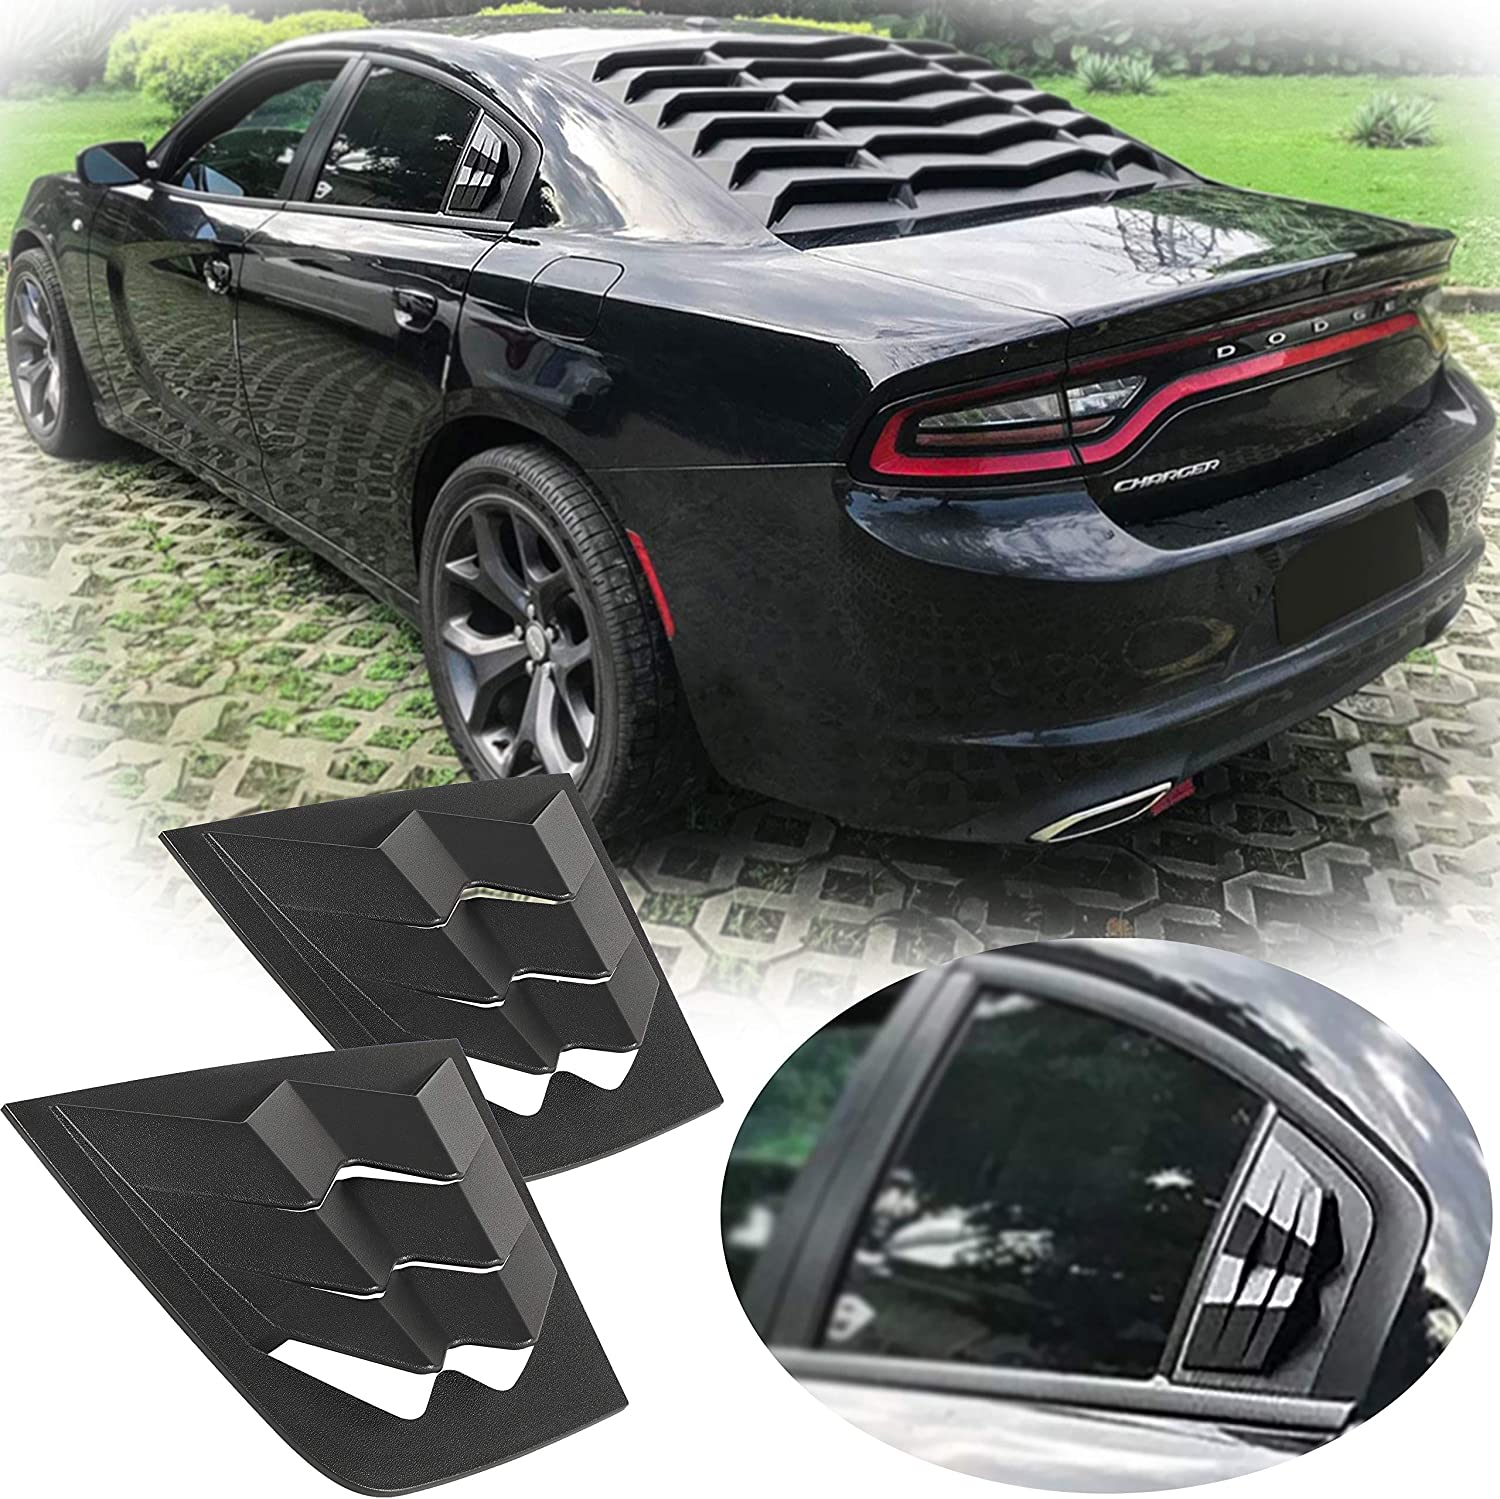 EnRand Max 61% OFF Side Window sale Louvers Windshield Shade Sun Cover Dodge for